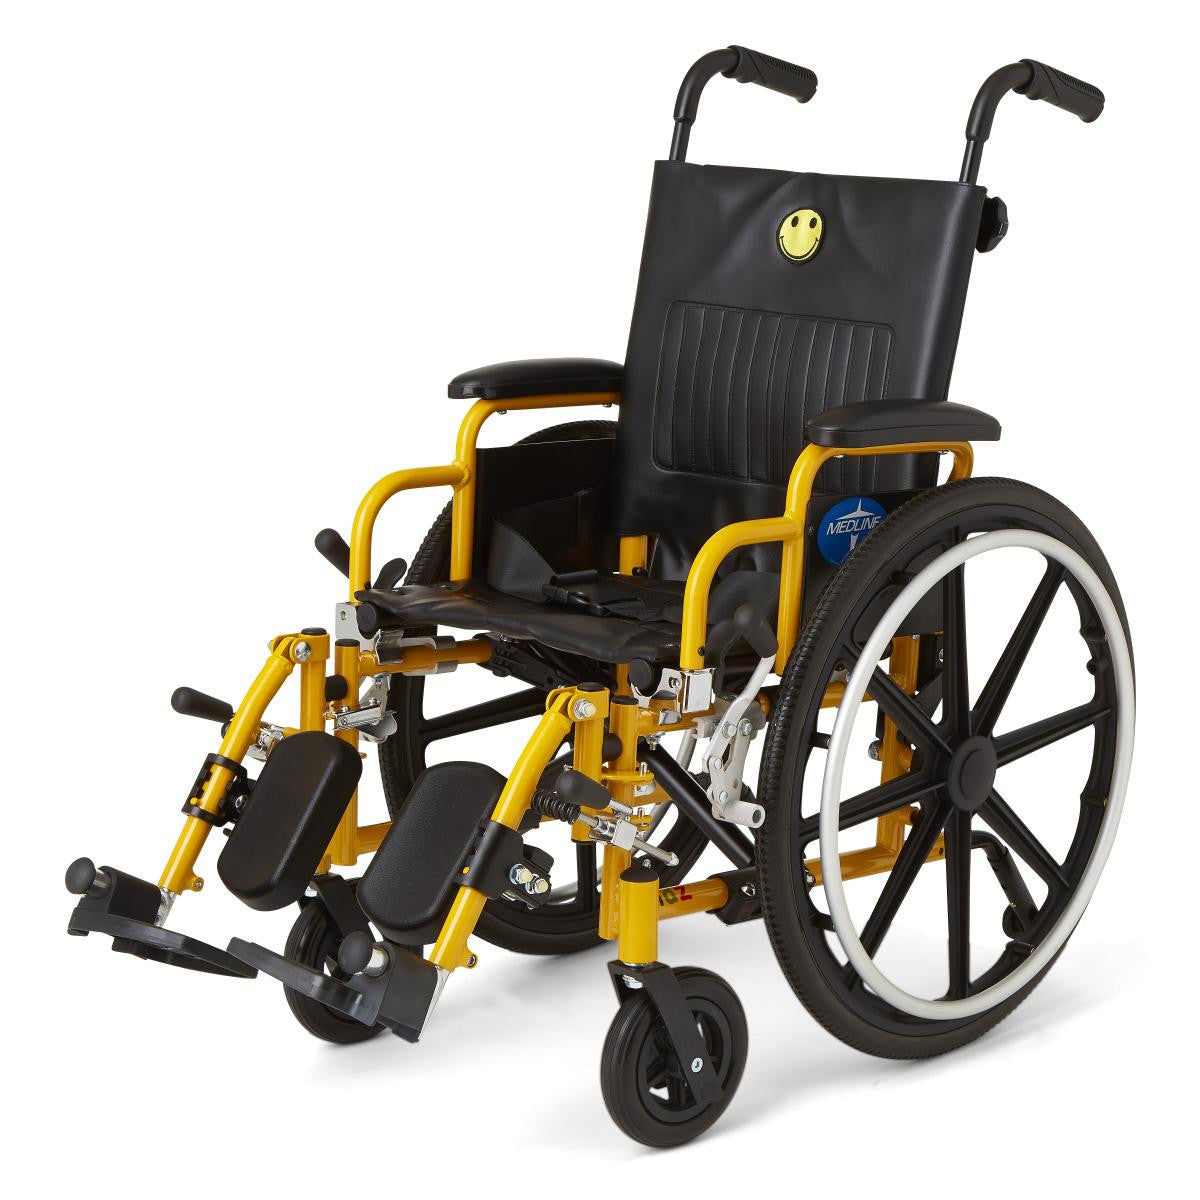 "Kidz Pediatric Wheelchair 14"" (Anti-tippers included)"